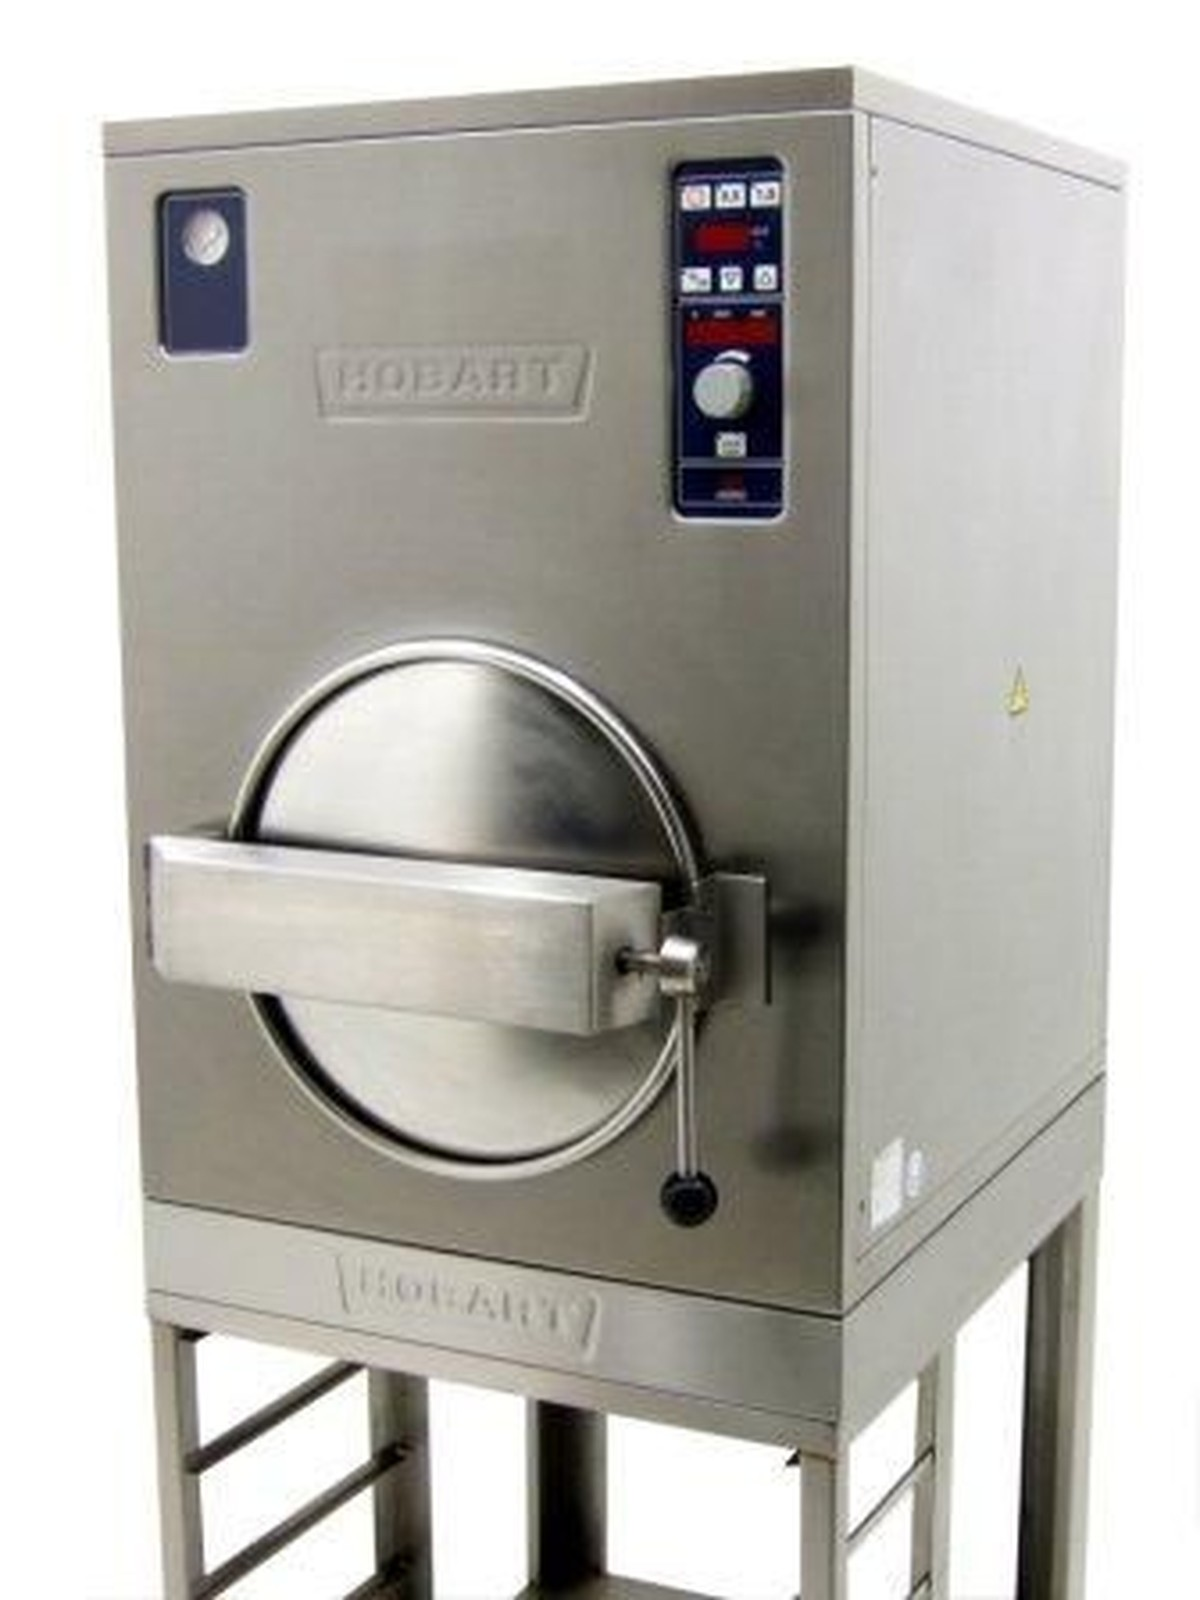 Secondhand Catering Equipment Steam Cookers Hobart 304